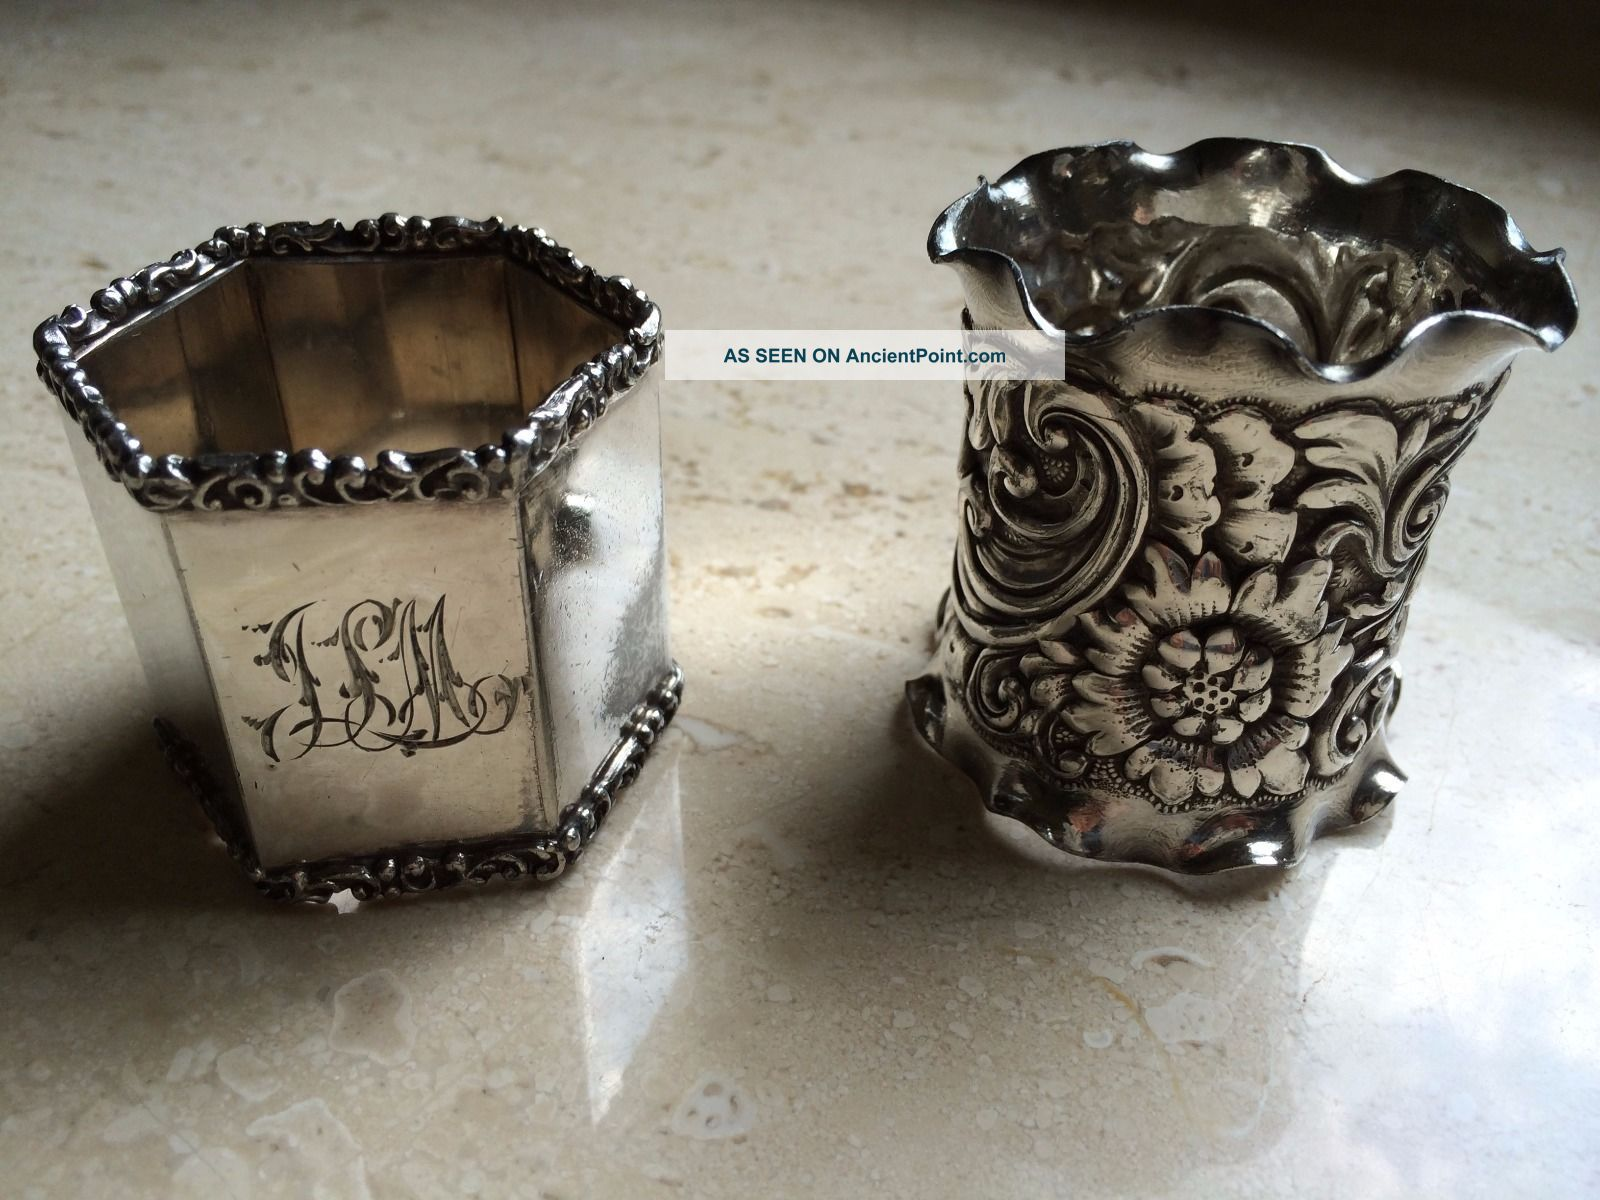 2 Antique Napkin Rings Silverplate Ornate One Monogrammed Napkin Rings & Clips photo